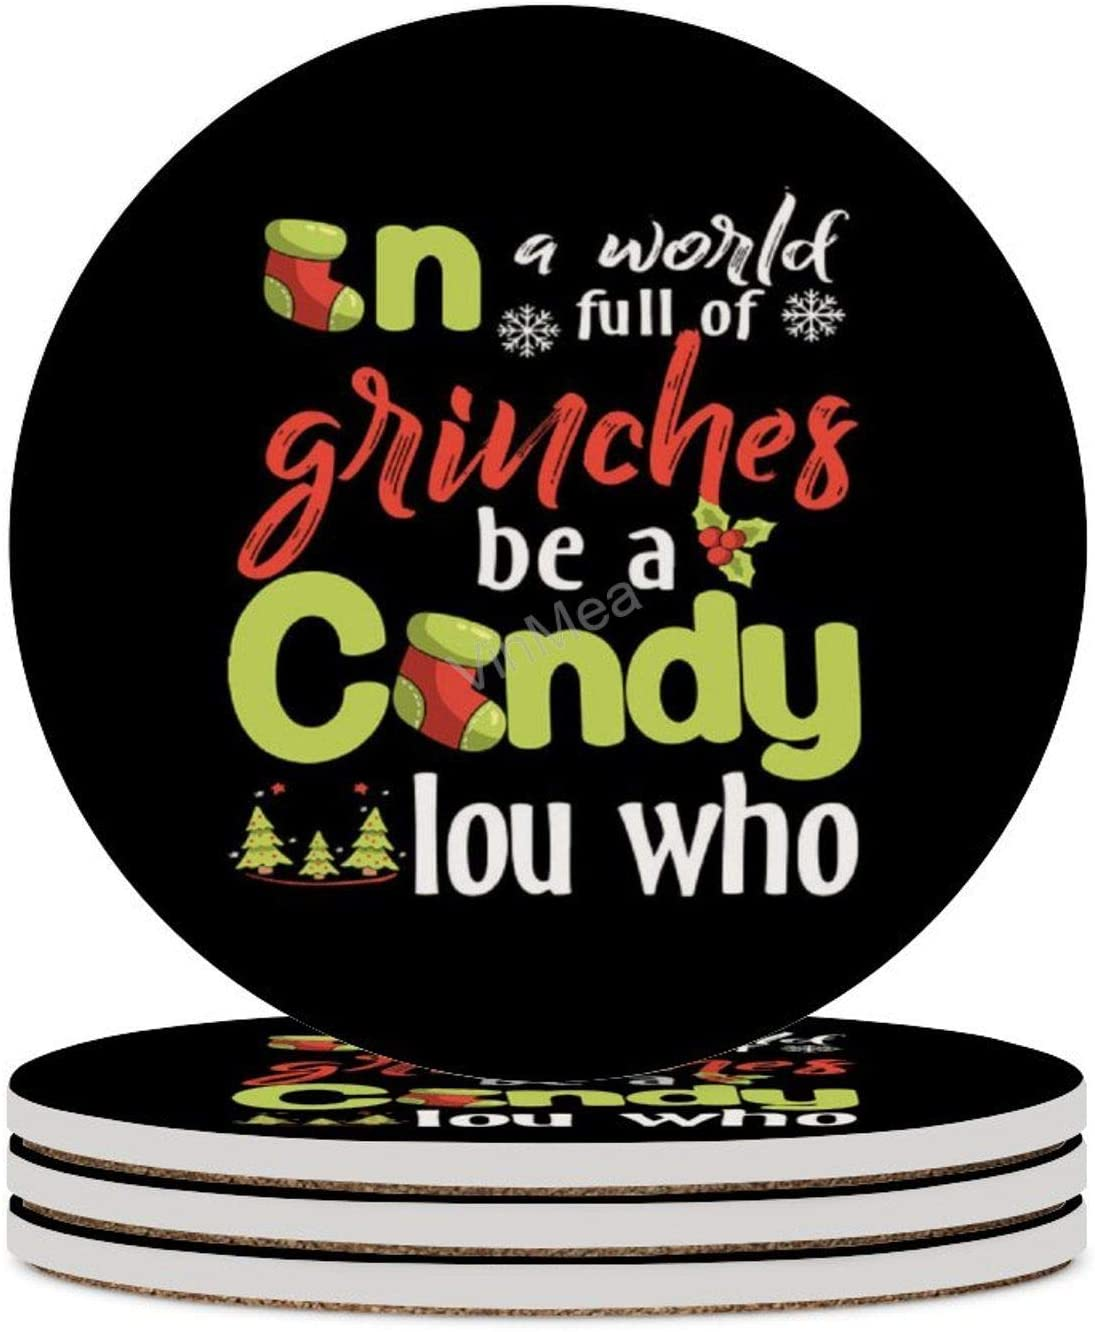 Set of 4 Ceramic Coasters In A World Full Of Grinches Be A Cindy Lou Who Christmas Round Drink Coasters with Cork Base Christmas Housewarming Gift Kitchen Bar Décor